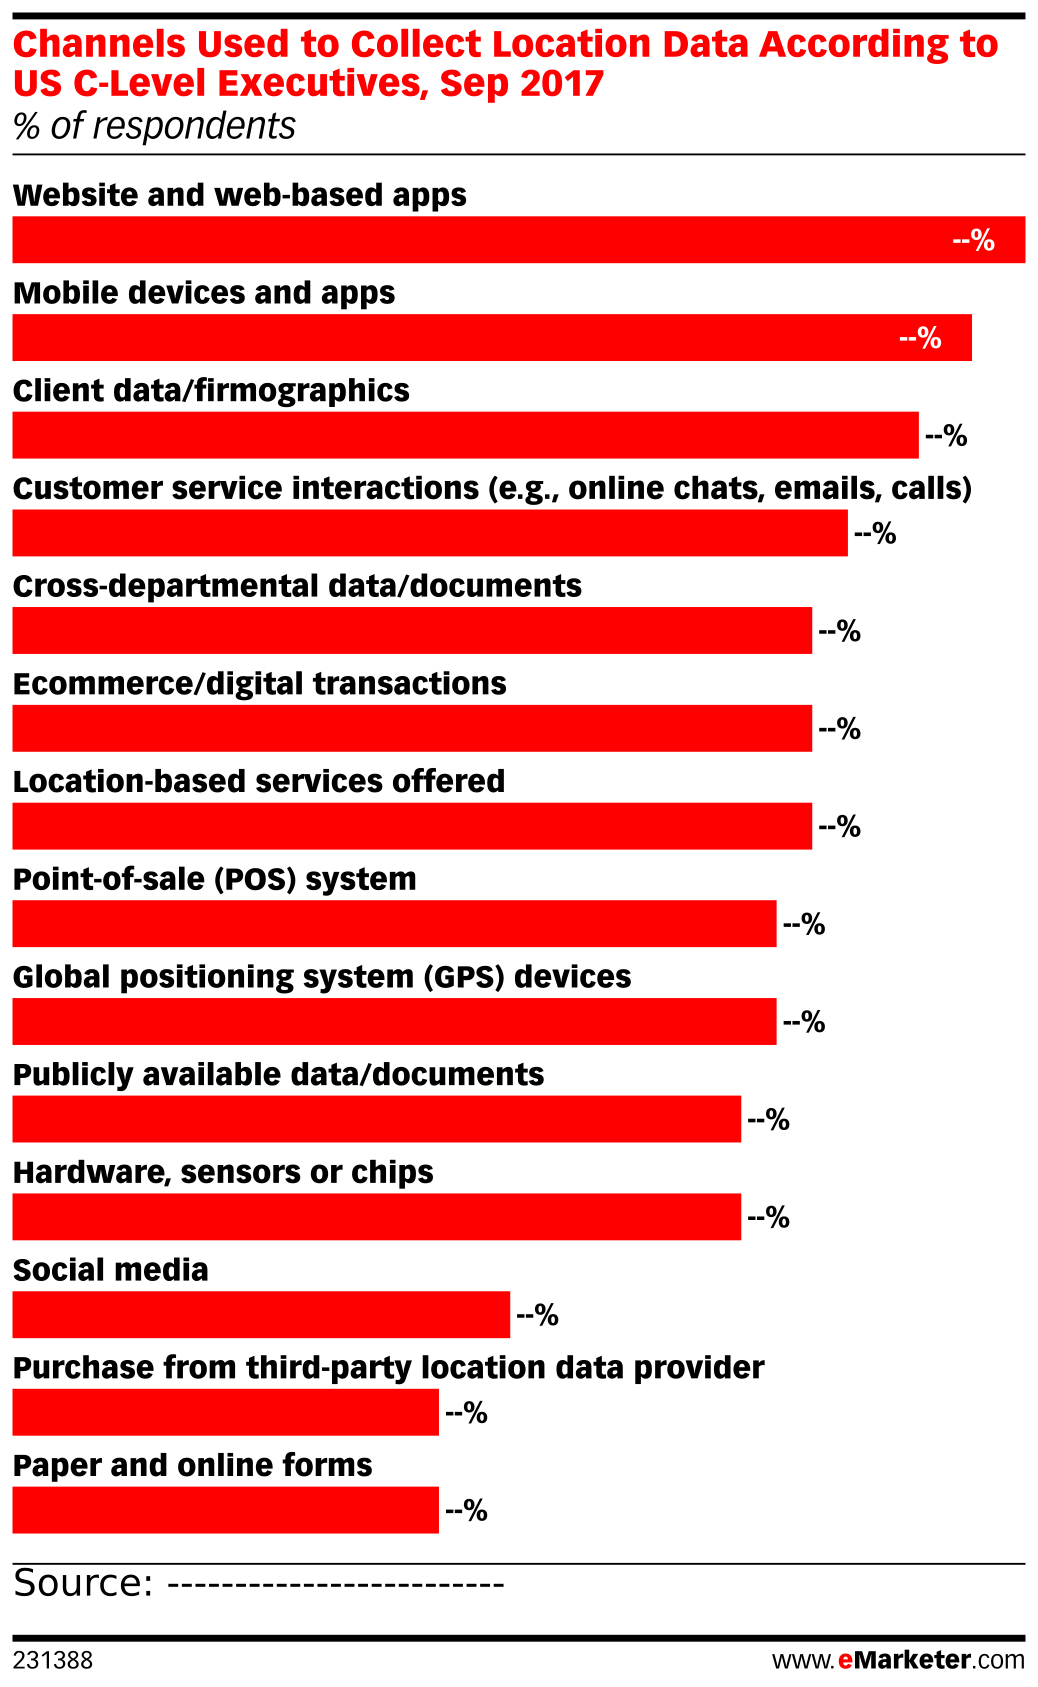 Channels Used to Collect Location Data According to US C-Level Executives, Sep 2017 (% of respondents)